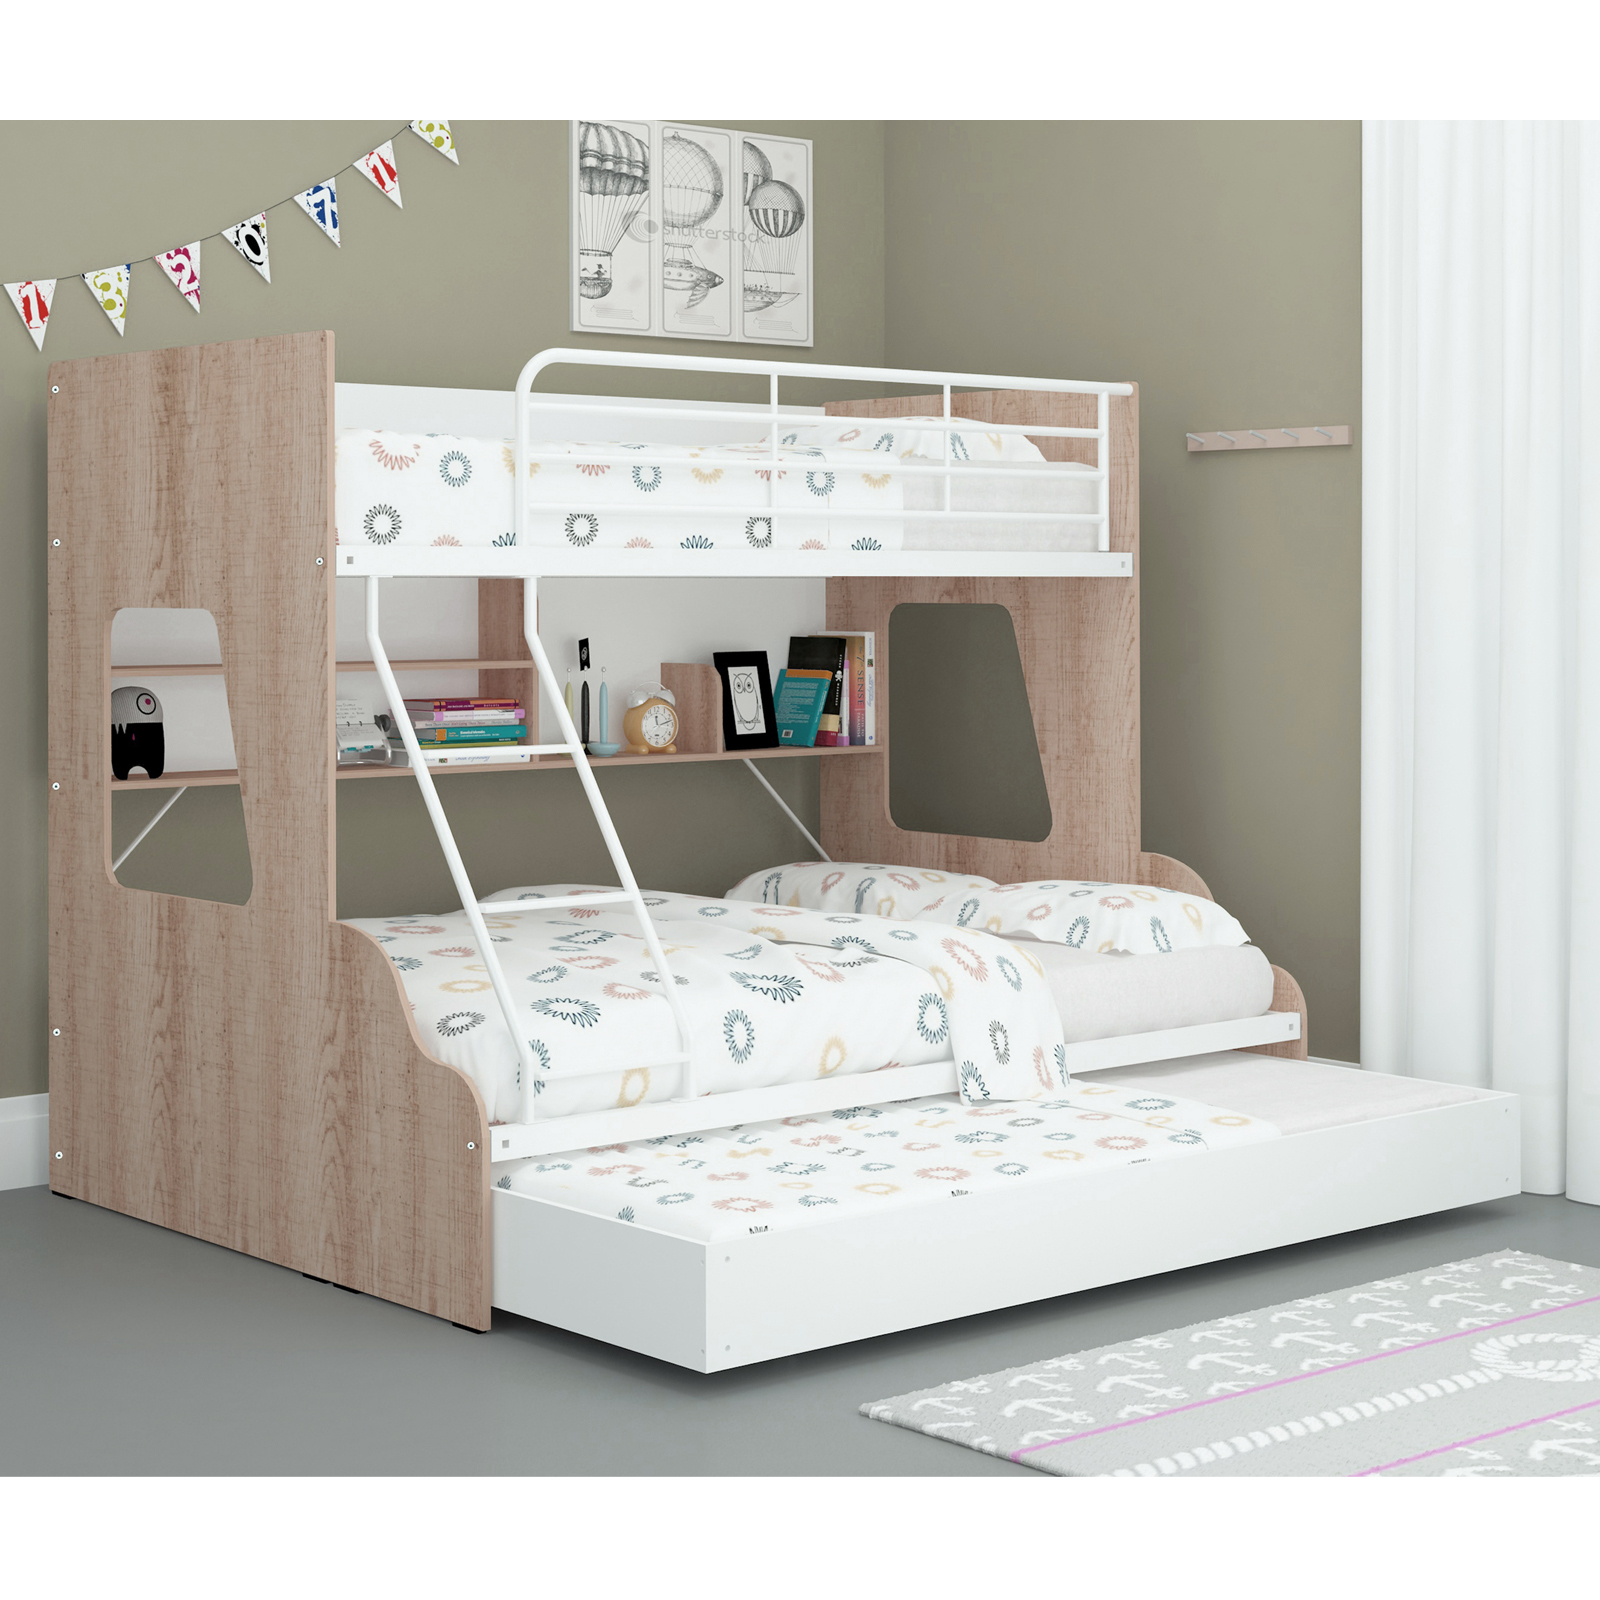 Cheap New Beds: NEW White Single Over Double Trio Bunk Bed With Shelves